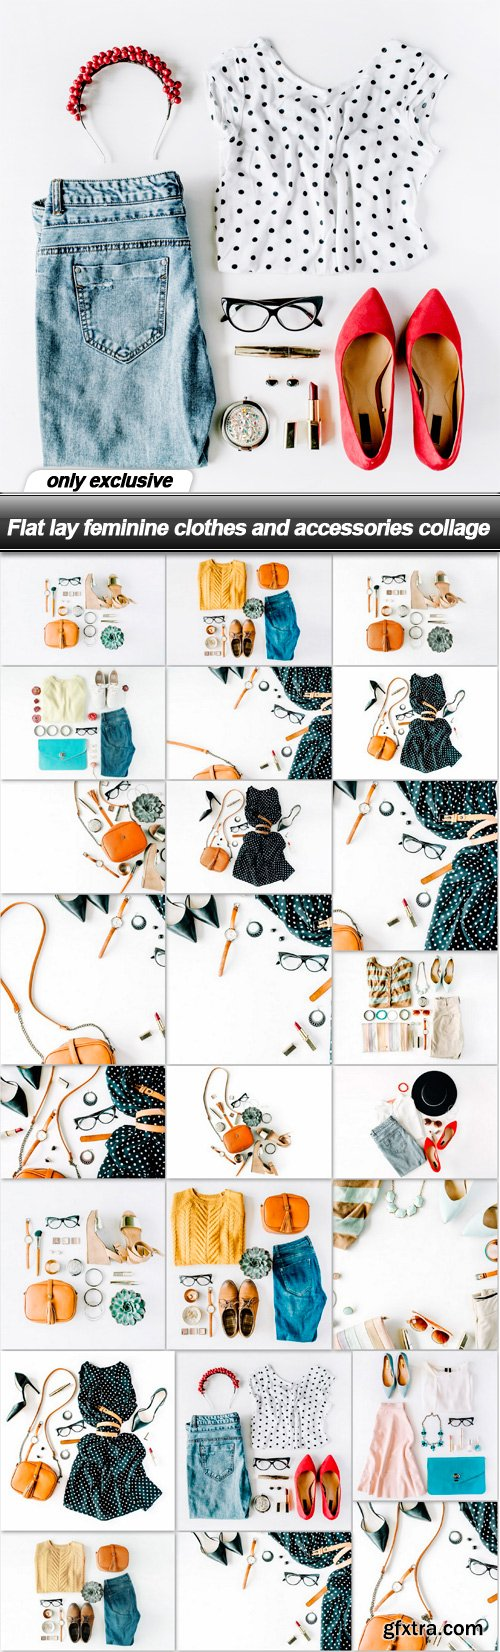 Flat lay feminine clothes and accessories collage - 24 UHQ JPEG